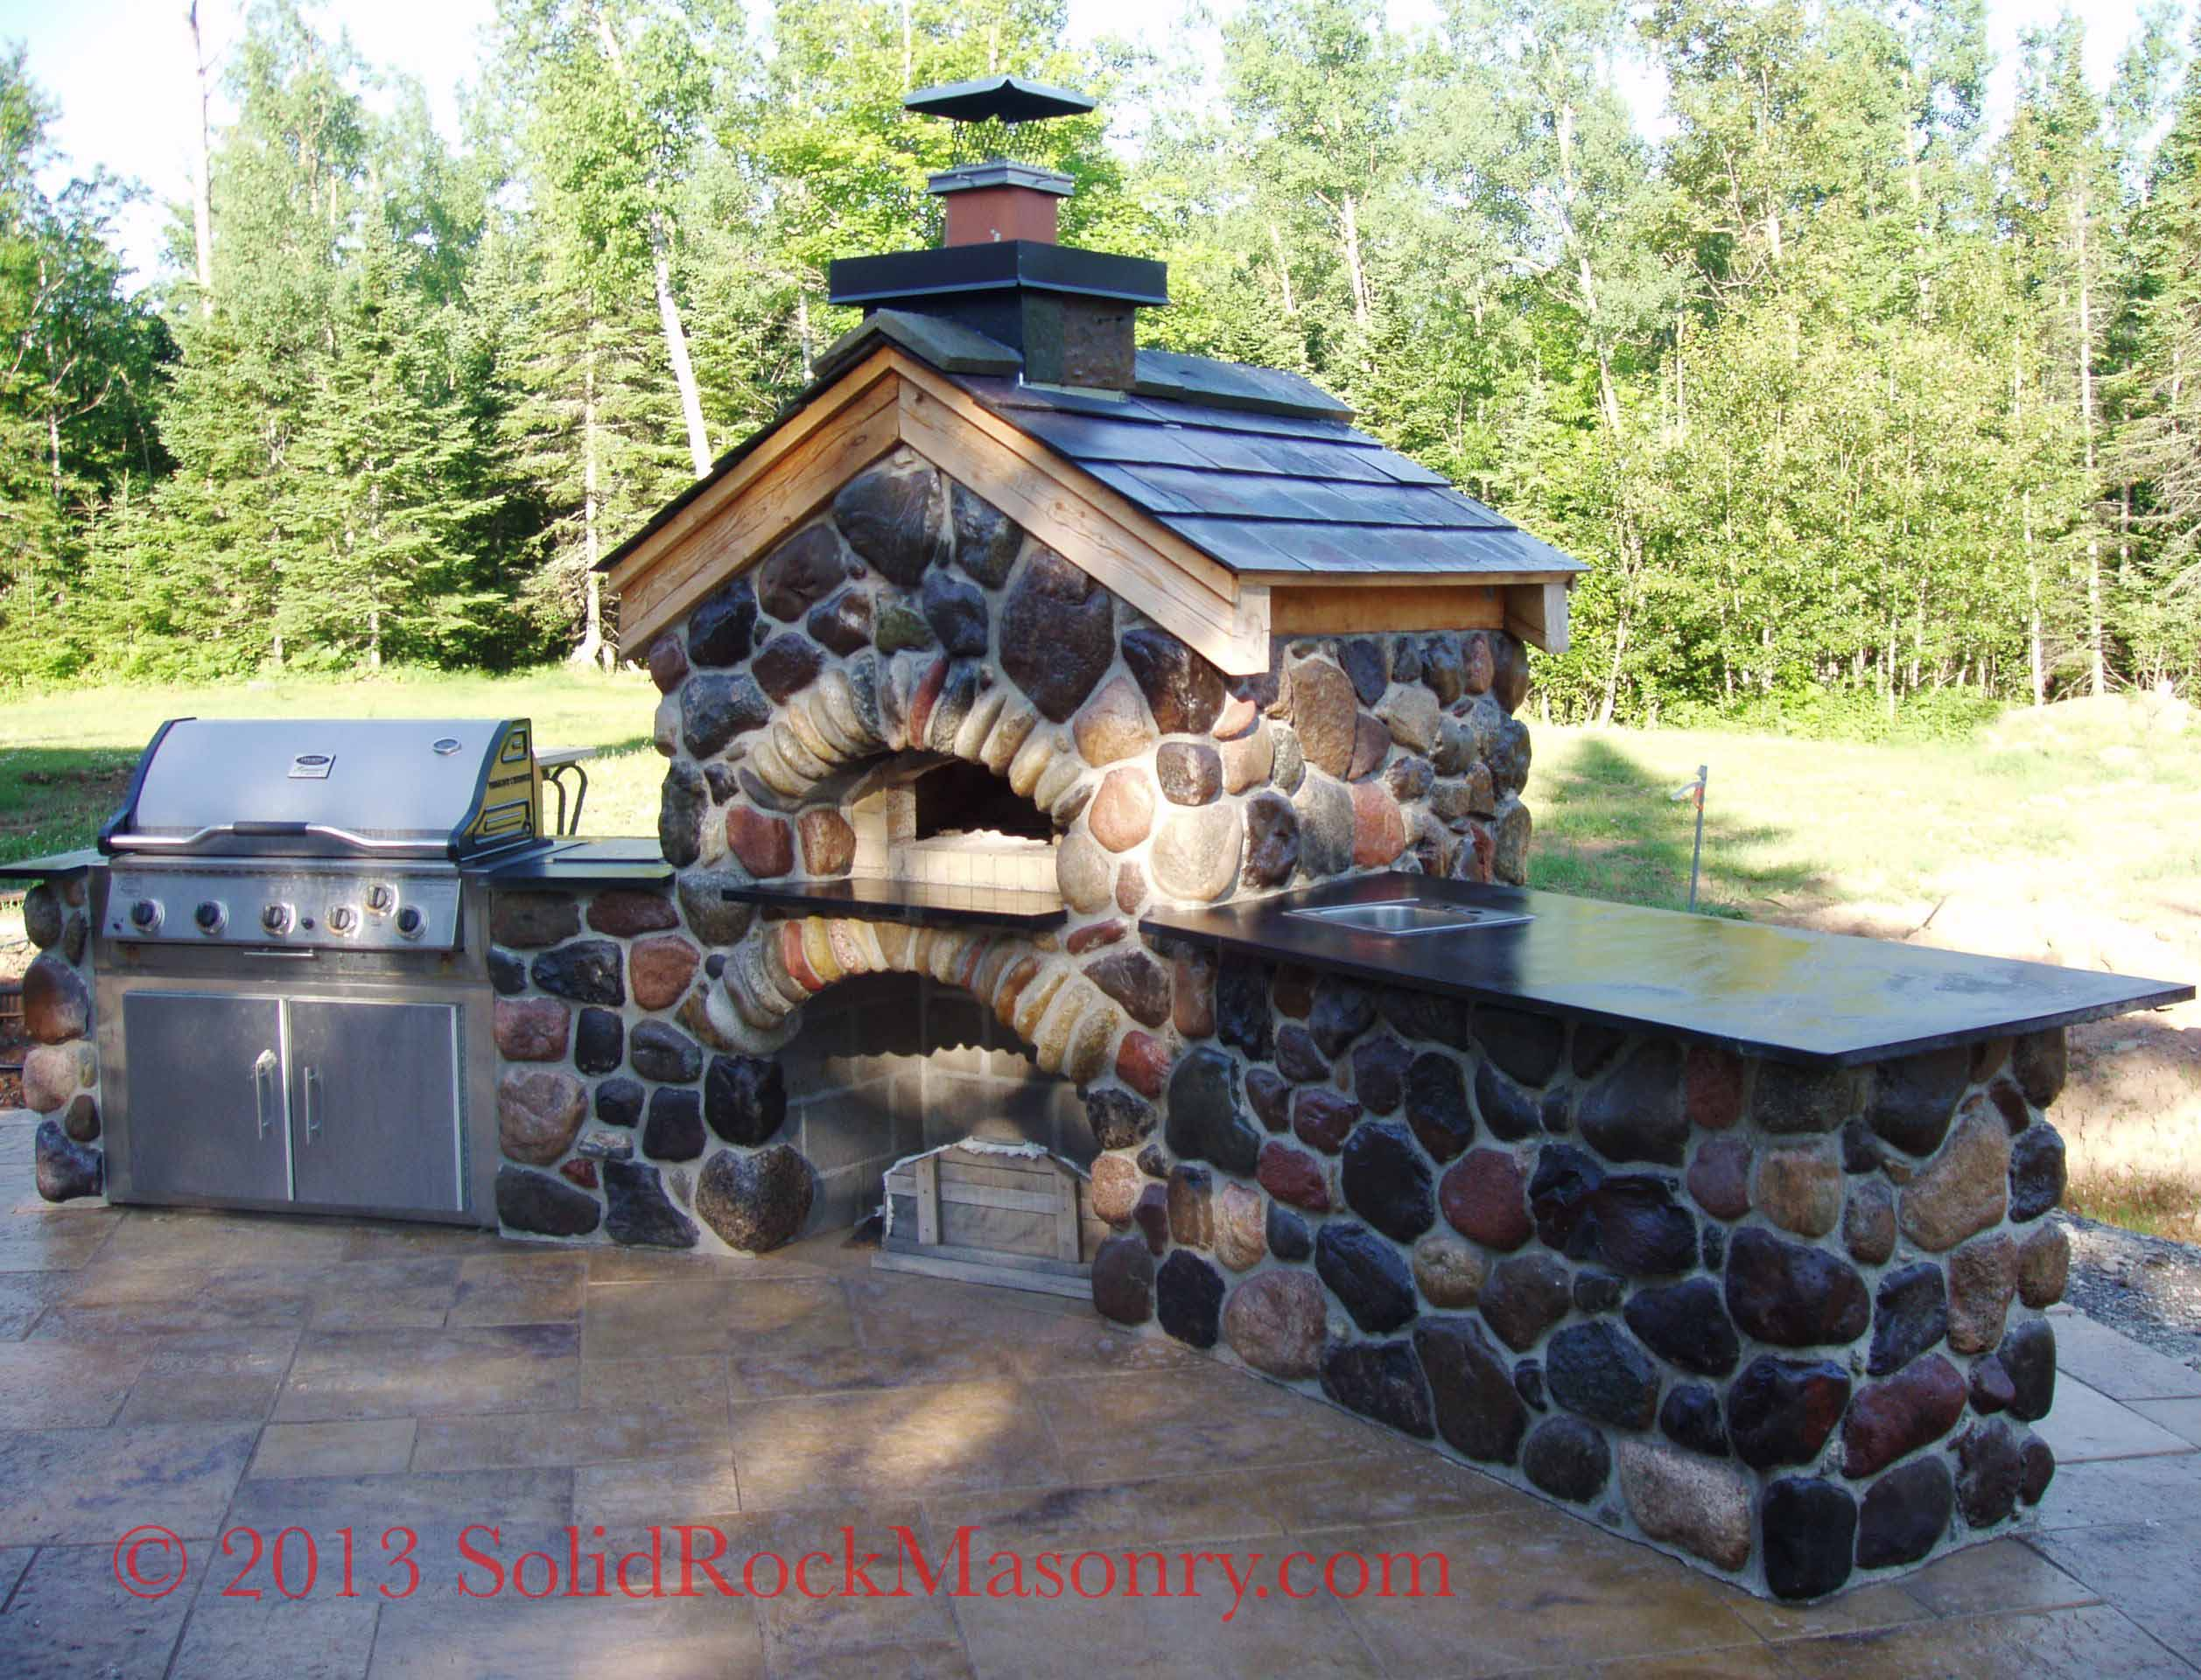 Stone Work Masonry Solid Rock Duluth Mn Another Rocket Stove Diagram Build Pinterest